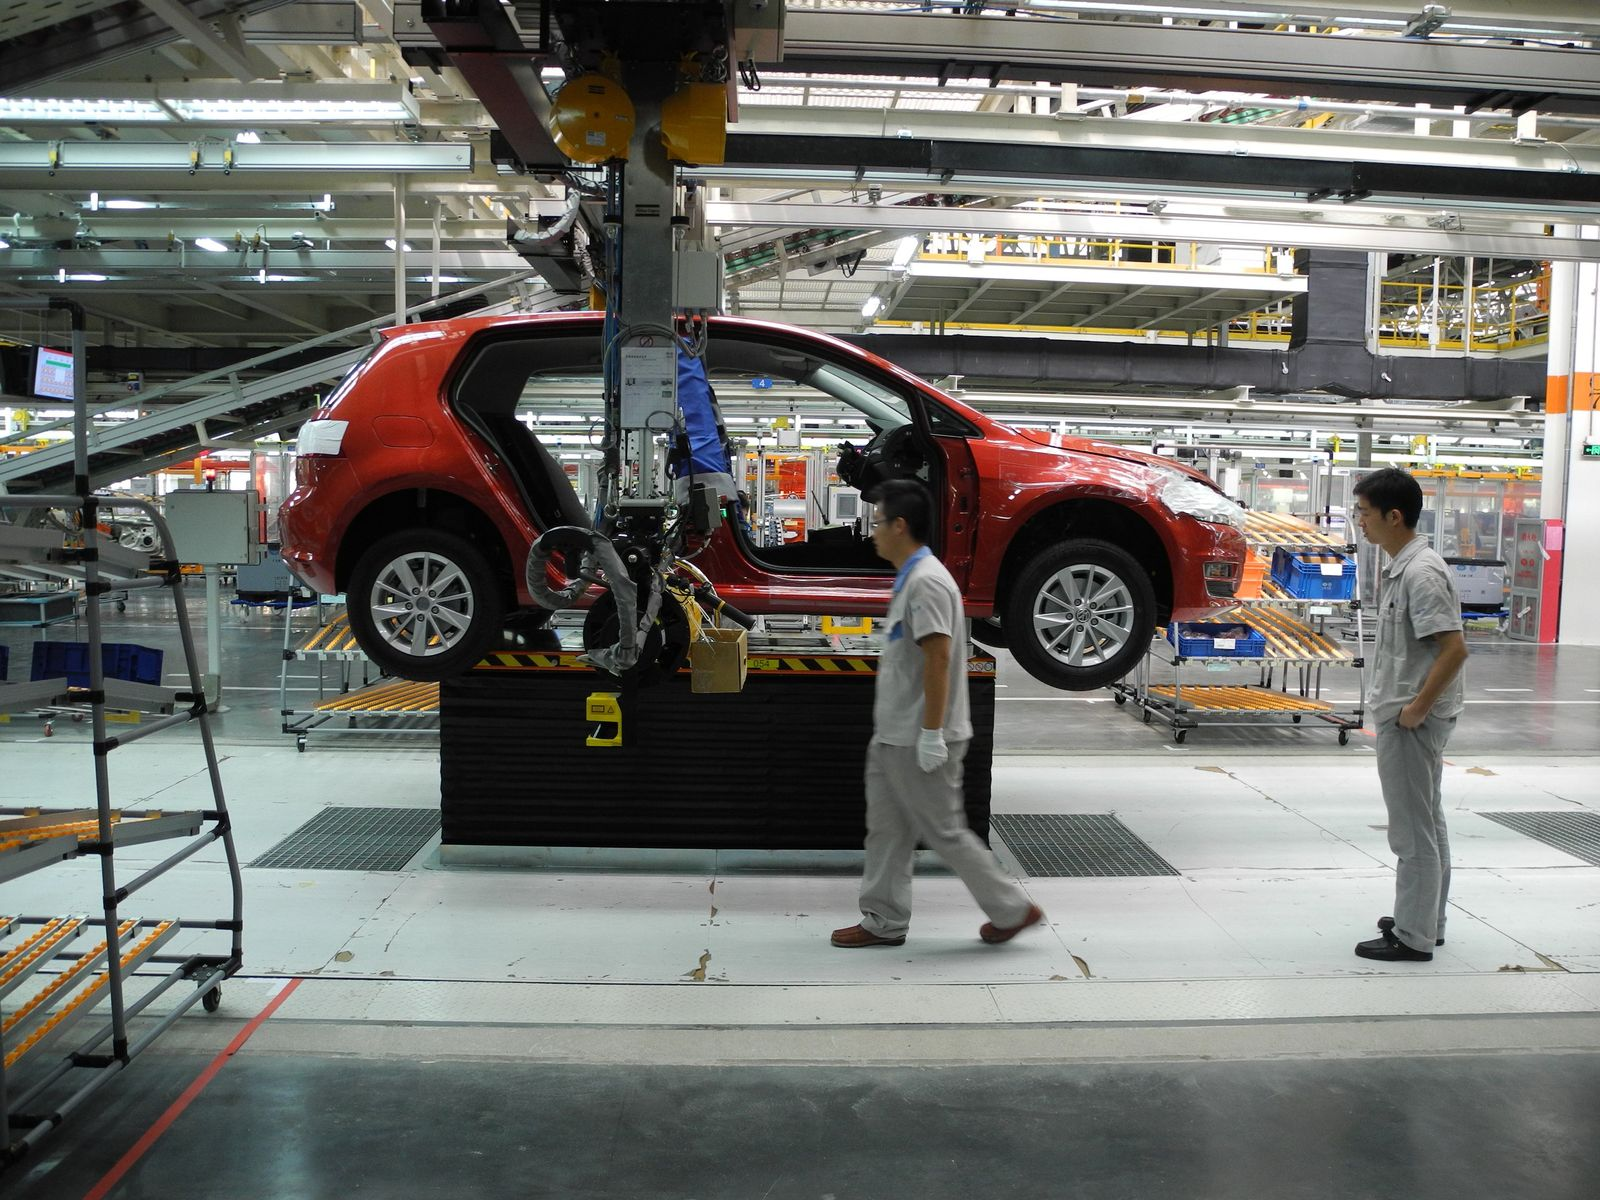 VW-Werk / China / Guangdong